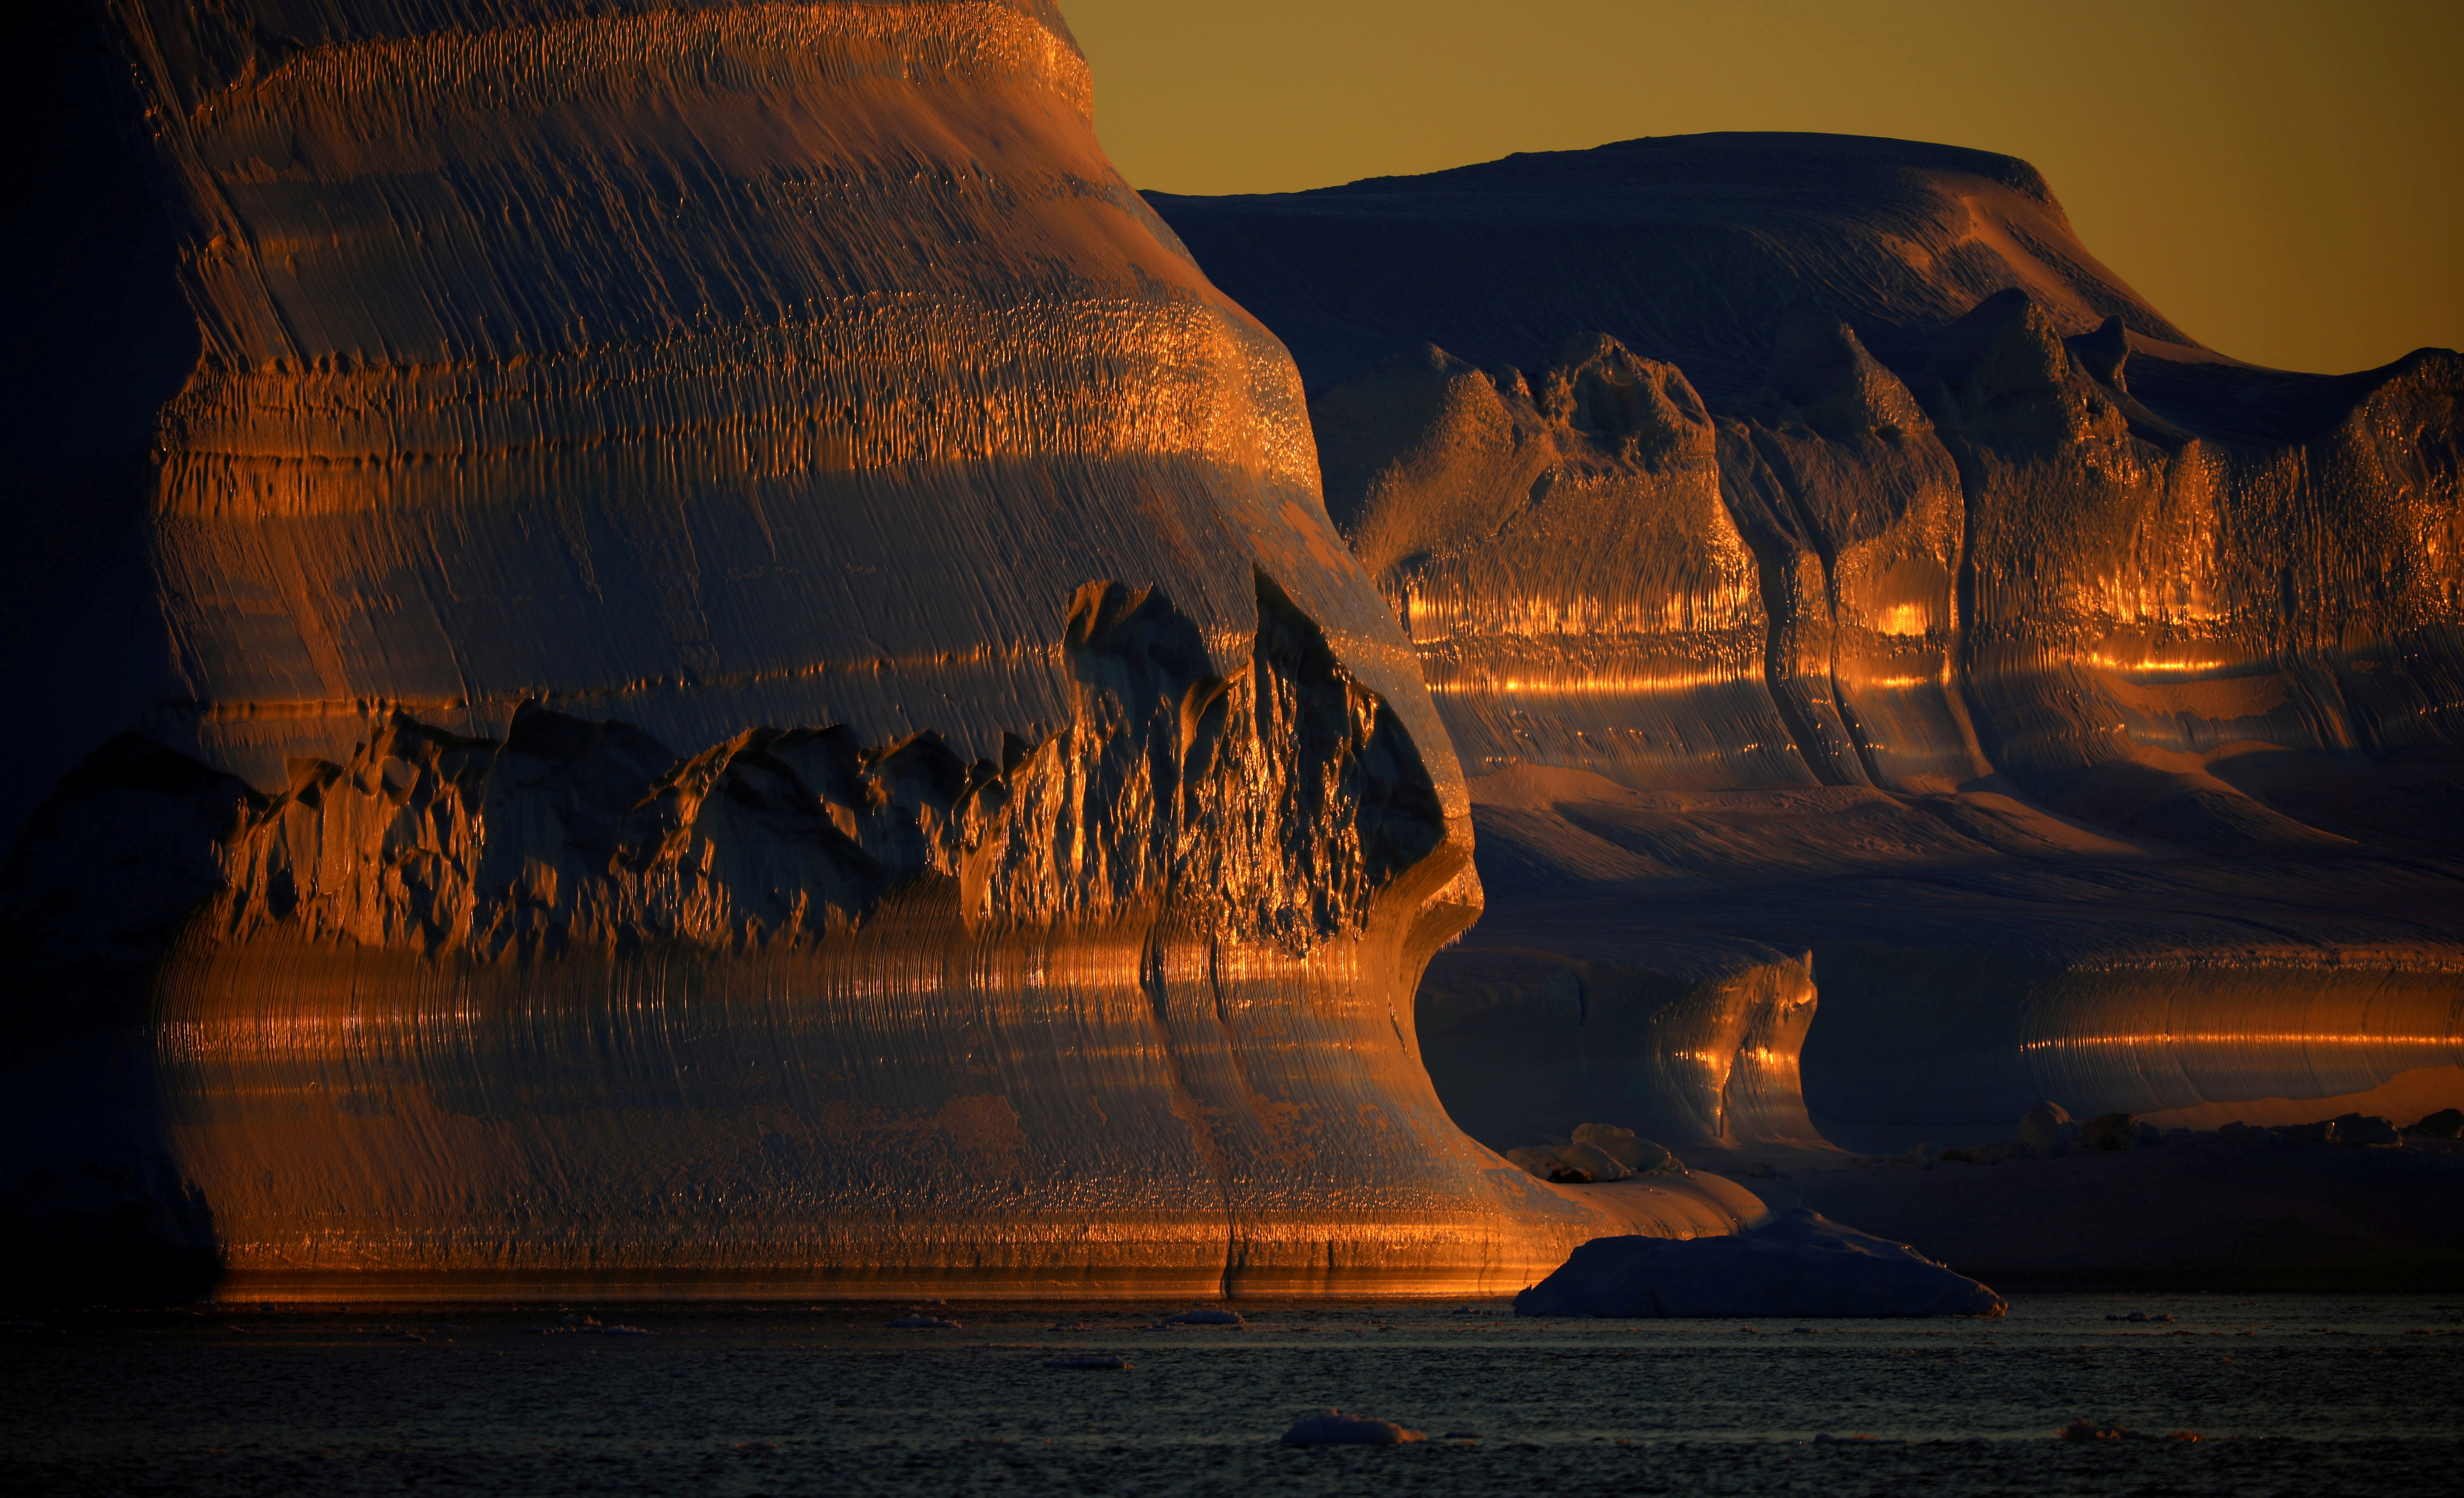 Icebergs are seen at the at the mouth of the Jakobshavns ice fjord during sunset near Ilulissat, Greenland, September 16, 2021. REUTERS/Hannibal Hanschke/File Photo